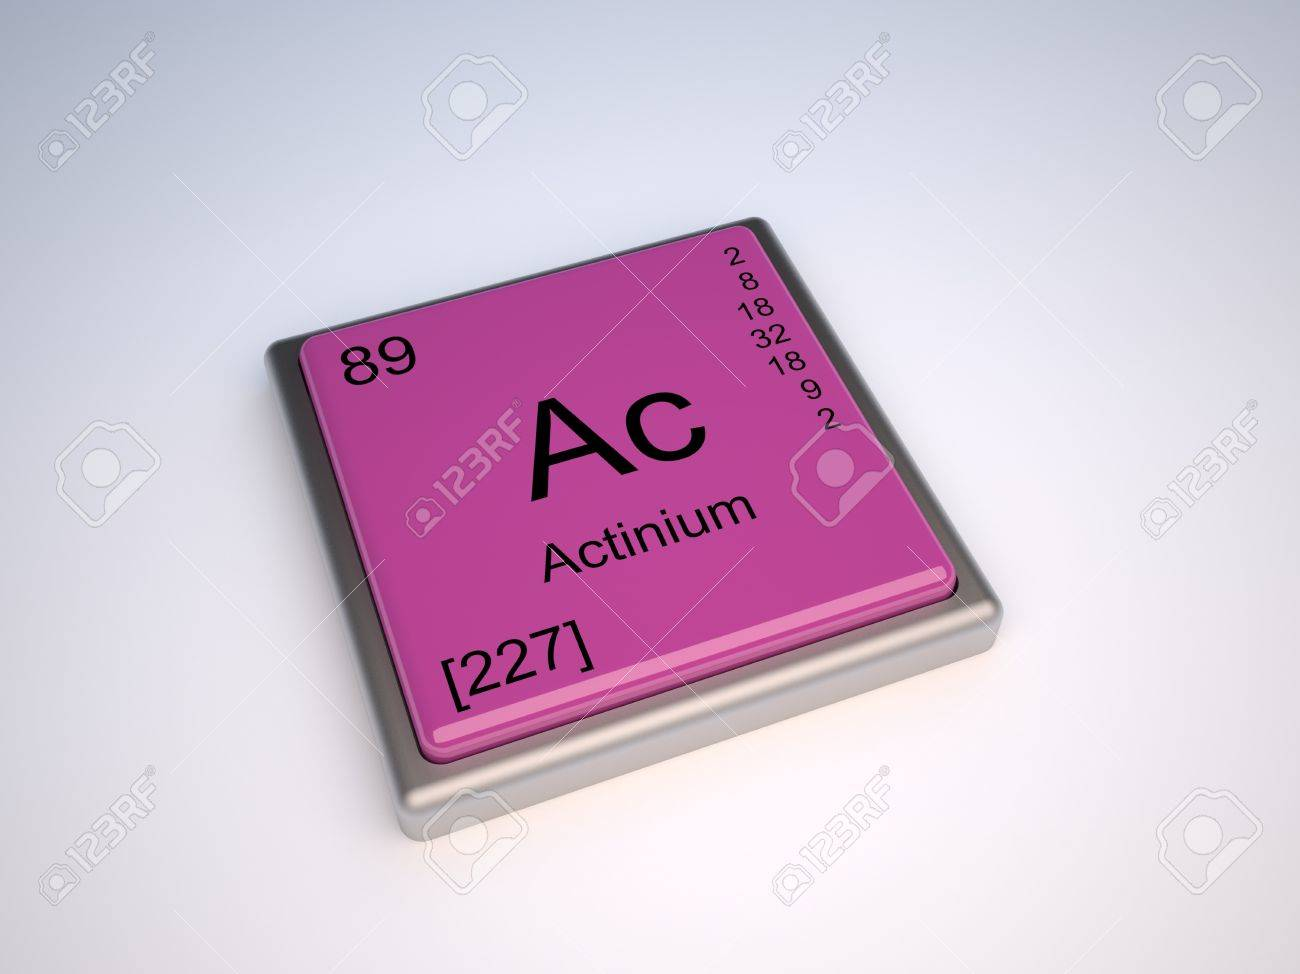 Actinium Chemical Element Of The Periodic Table With Symbol Ac Stock ...